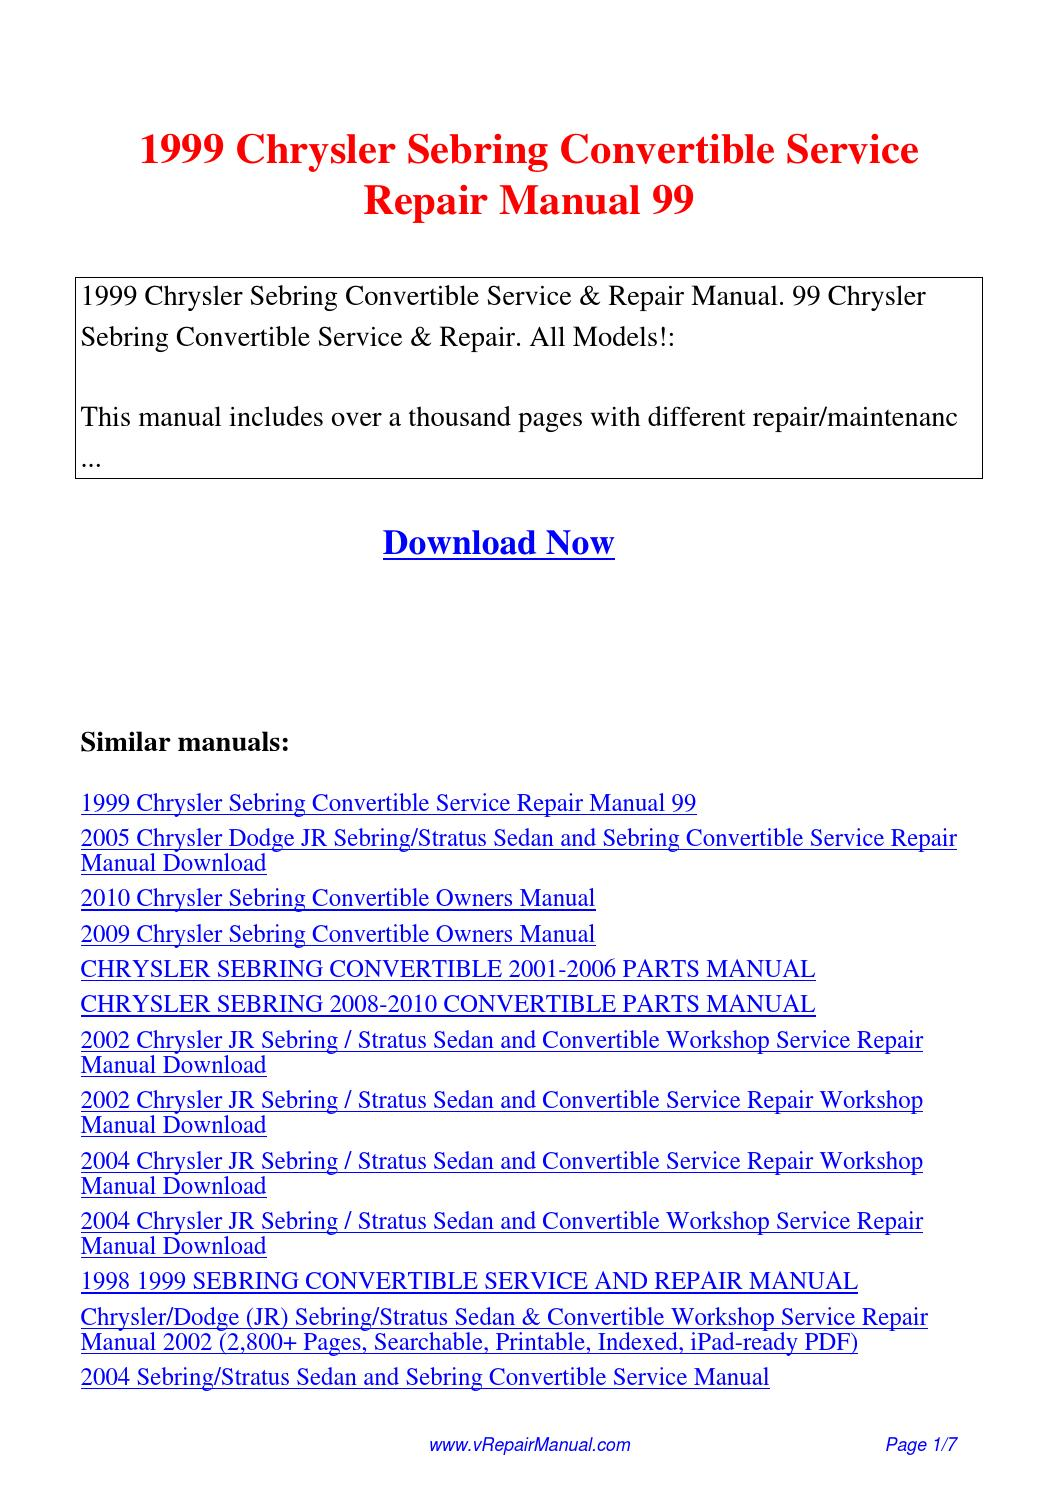 1999 Chrysler Sebring Convertible Service Repair Manual 99.pdf by David  Zhang - issuu